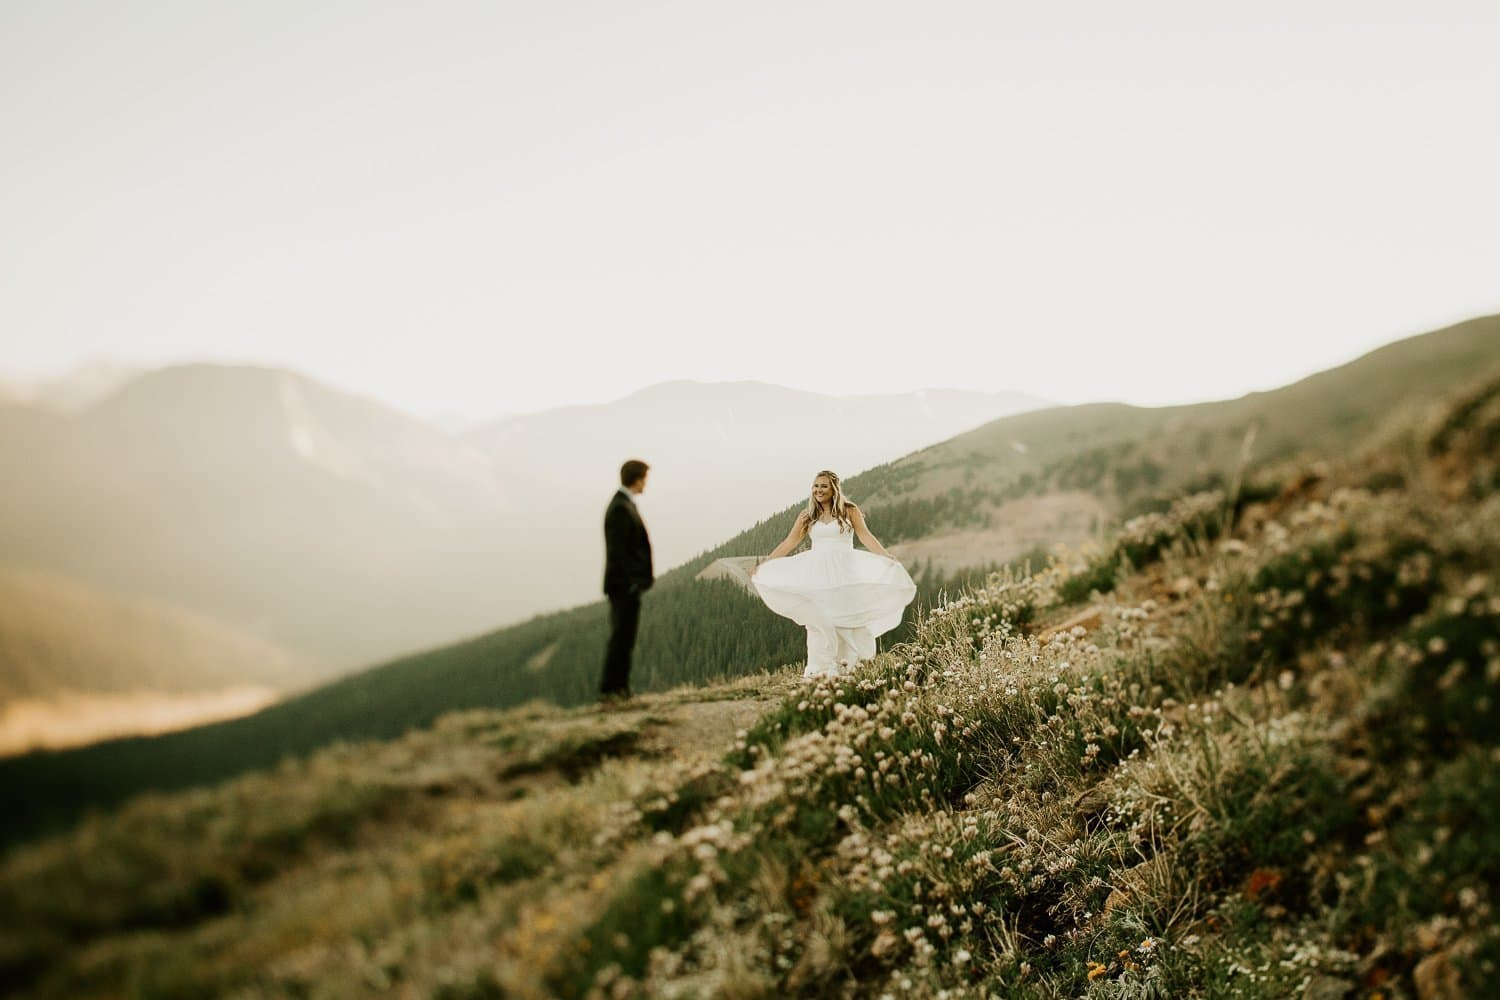 LOVELAND PASS ELOPEMENT|DESTINATION WEDDING PHOTOGRAPHER| SUMMIT COUNTY ADVENTURES|ALIVIA+BRINNAN|COLORADO SUMMER ELOPEMENT|JUSTYNA E BUTLER PHOTOGRAPHY|ADVENTURE HIKING ELOPEMENT PHOTOGRAPHER | CREATIVE WEDDING PHOTOGRAPHY FOR ADVENTUROUS COUPLES| COLORADO MOUNTAIN WEDDING PHOTOGRAPHER